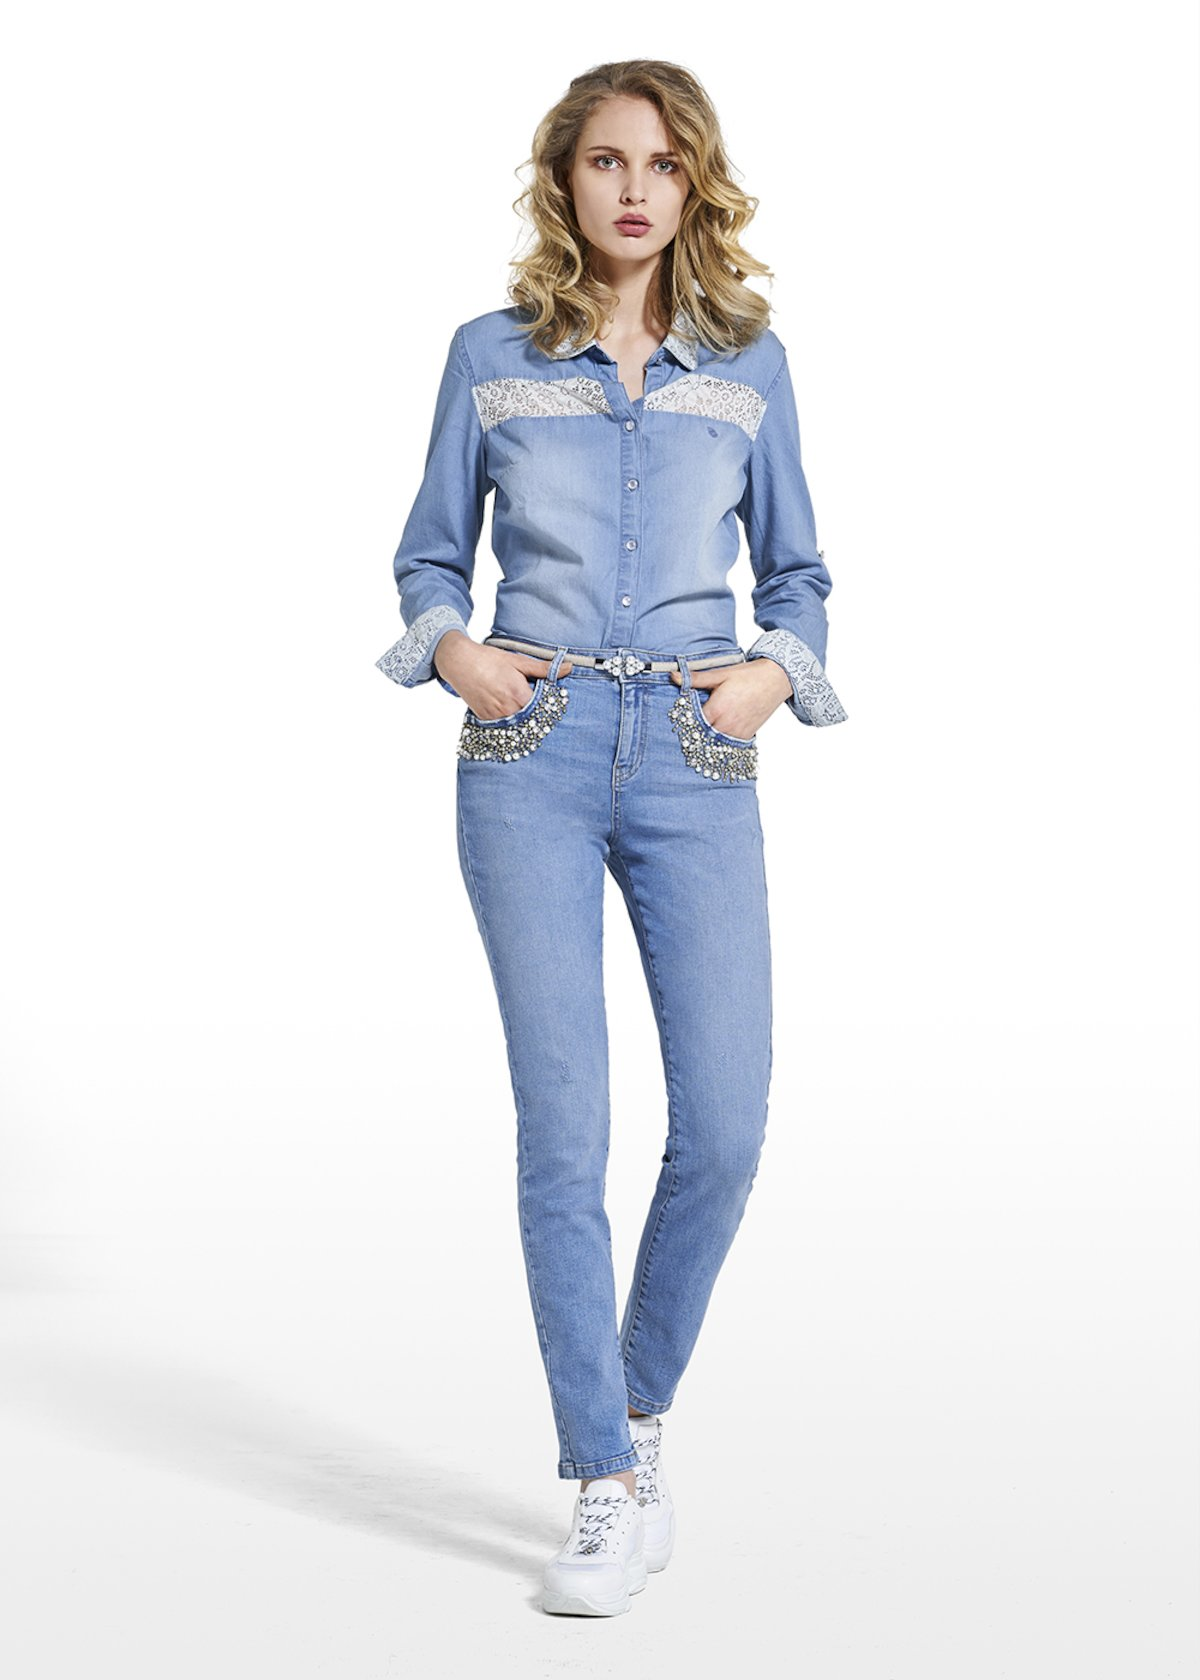 Jeans Dexter 5-pocket with beaded detail and crystal rhinestones - Blue - Woman - Category image